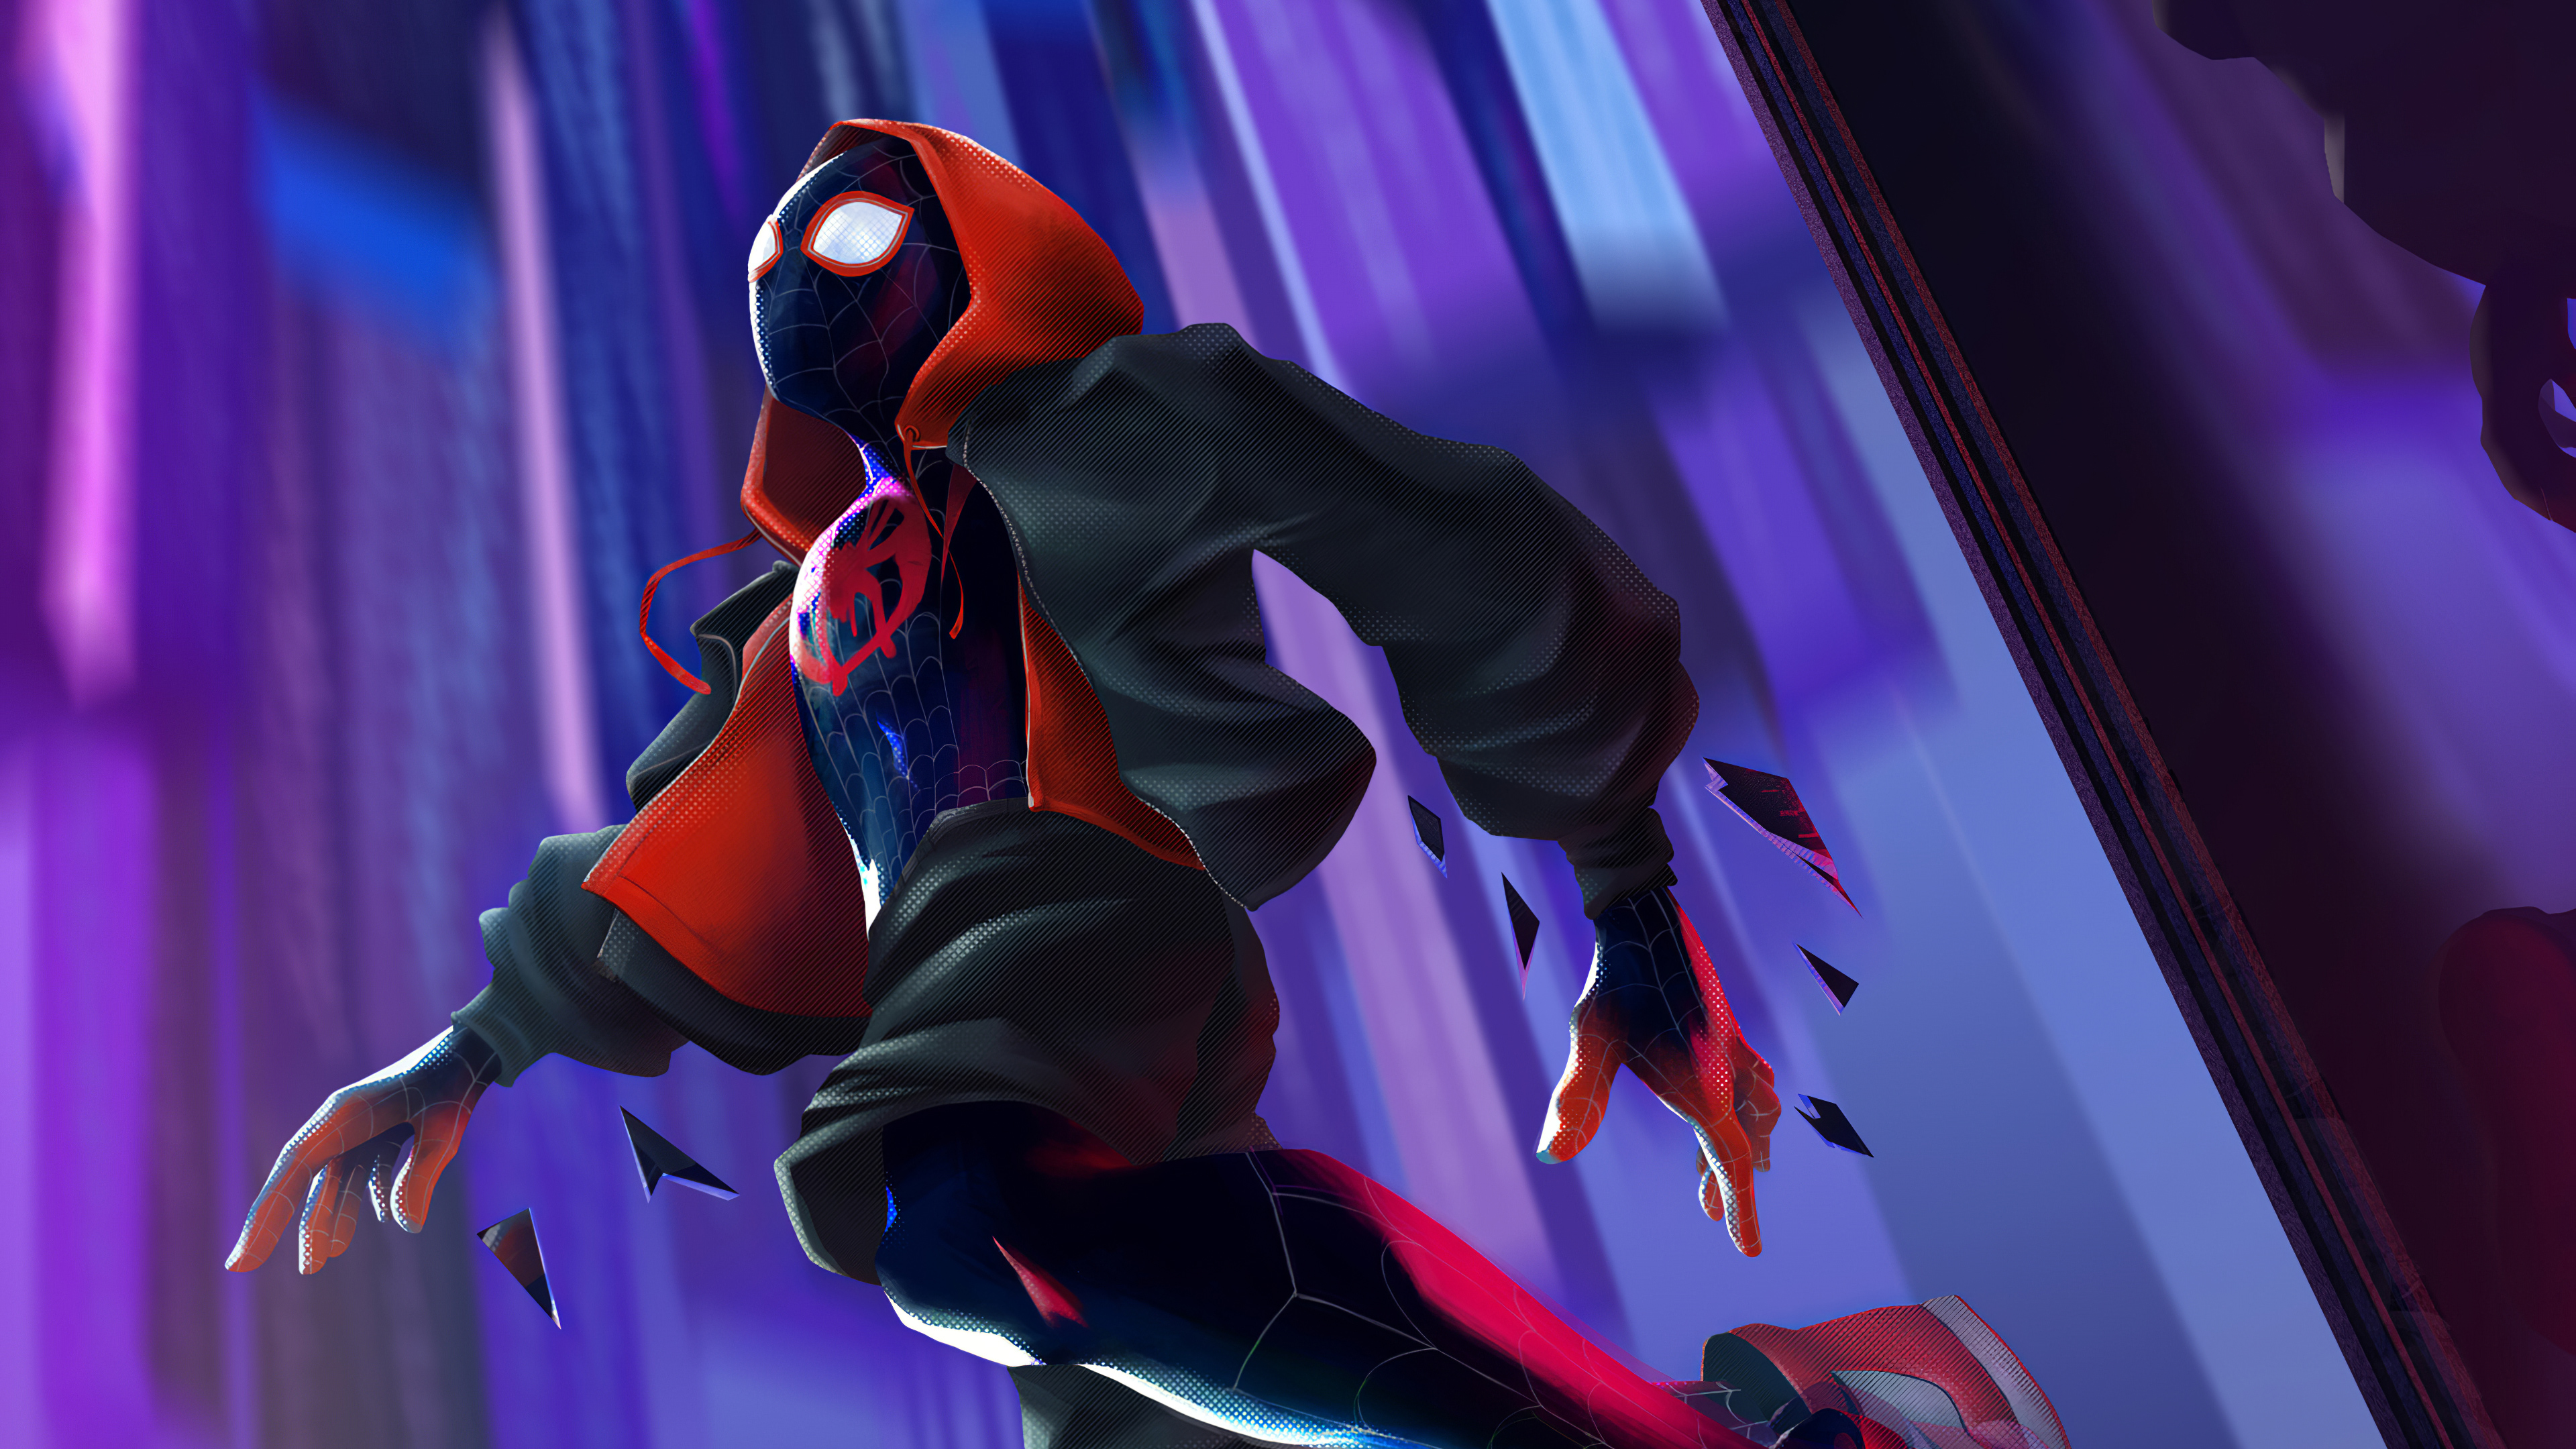 1336x768 Spider Man Miles 2020 Laptop Hd Hd 4k Wallpapers Images Backgrounds Photos And Pictures